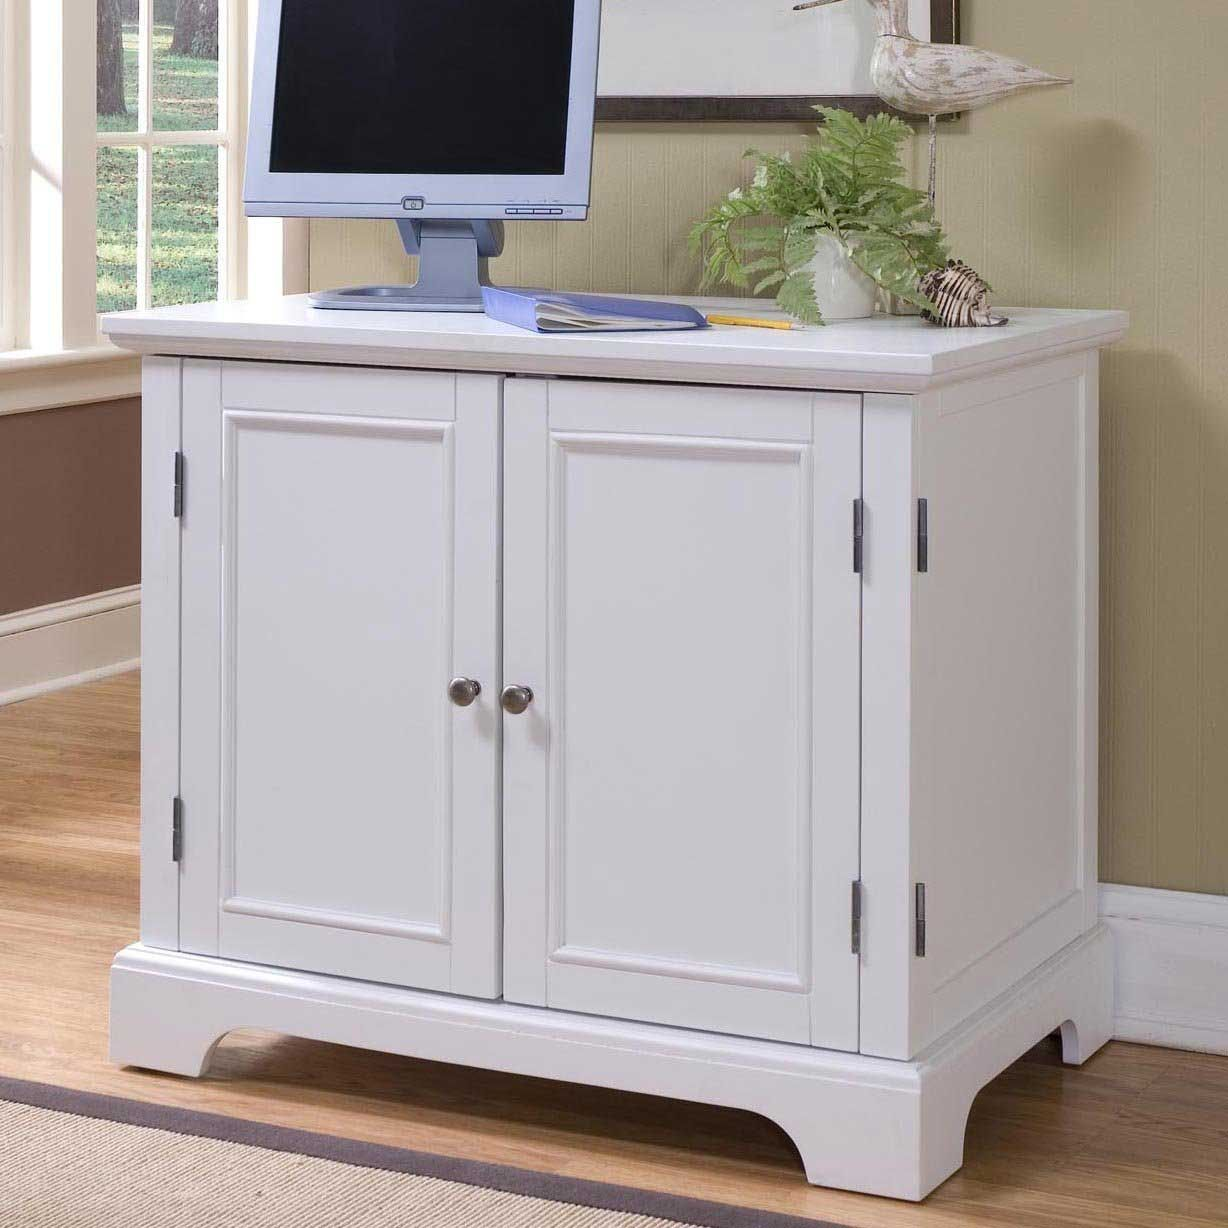 home styles naples compact computer armoire clear the clutter in your home office with the home styles naples compact computer armoire